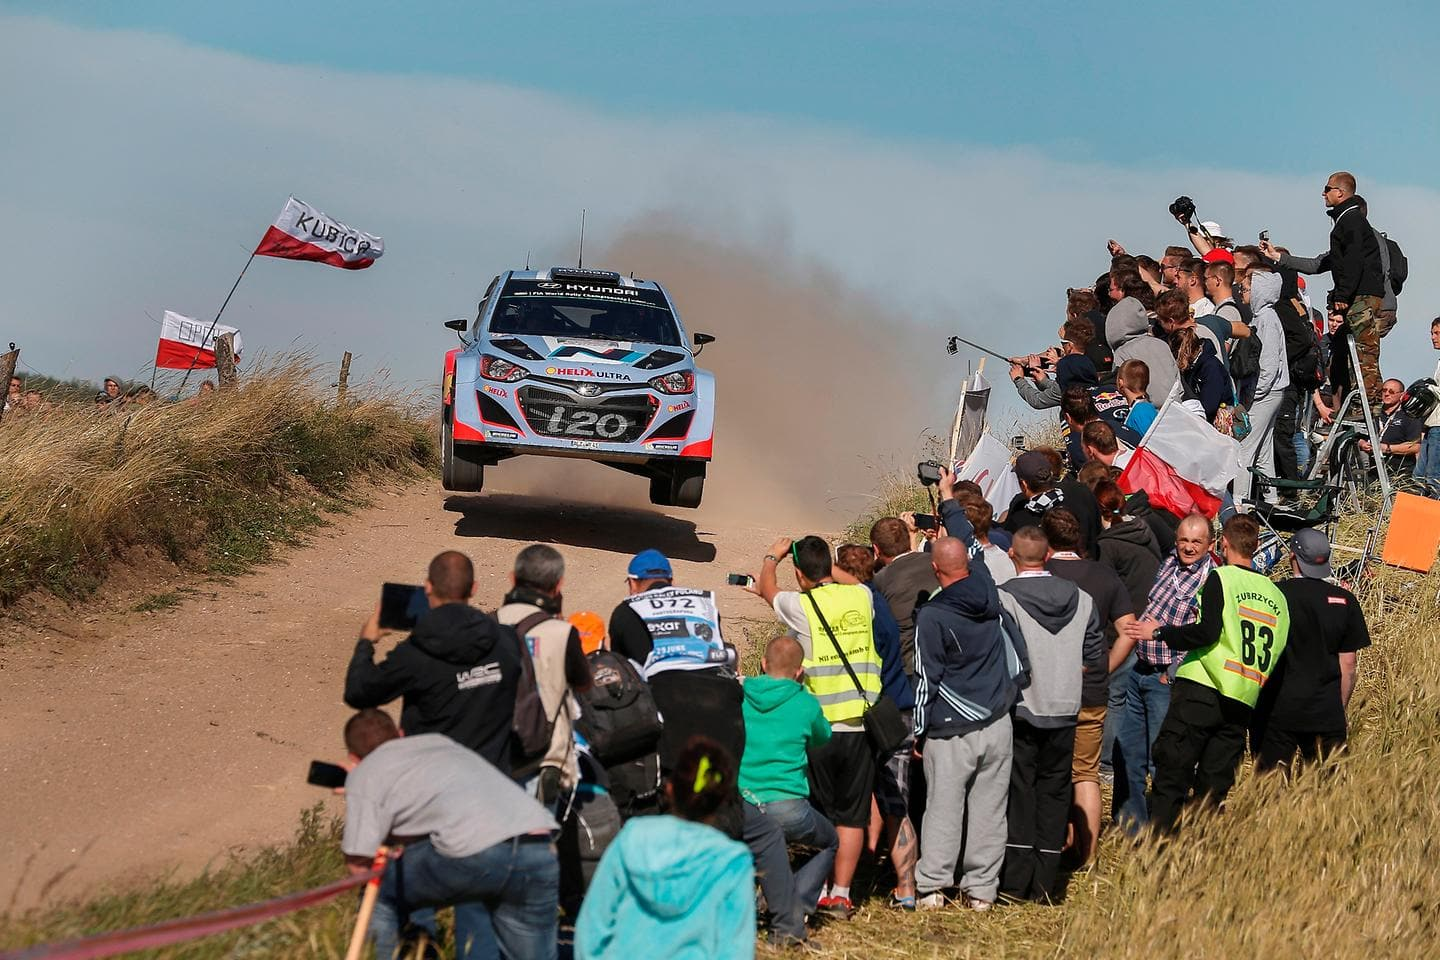 Hyundai Motorsport Looks to Maintain Podium Pace with Four-car Entry in Poland